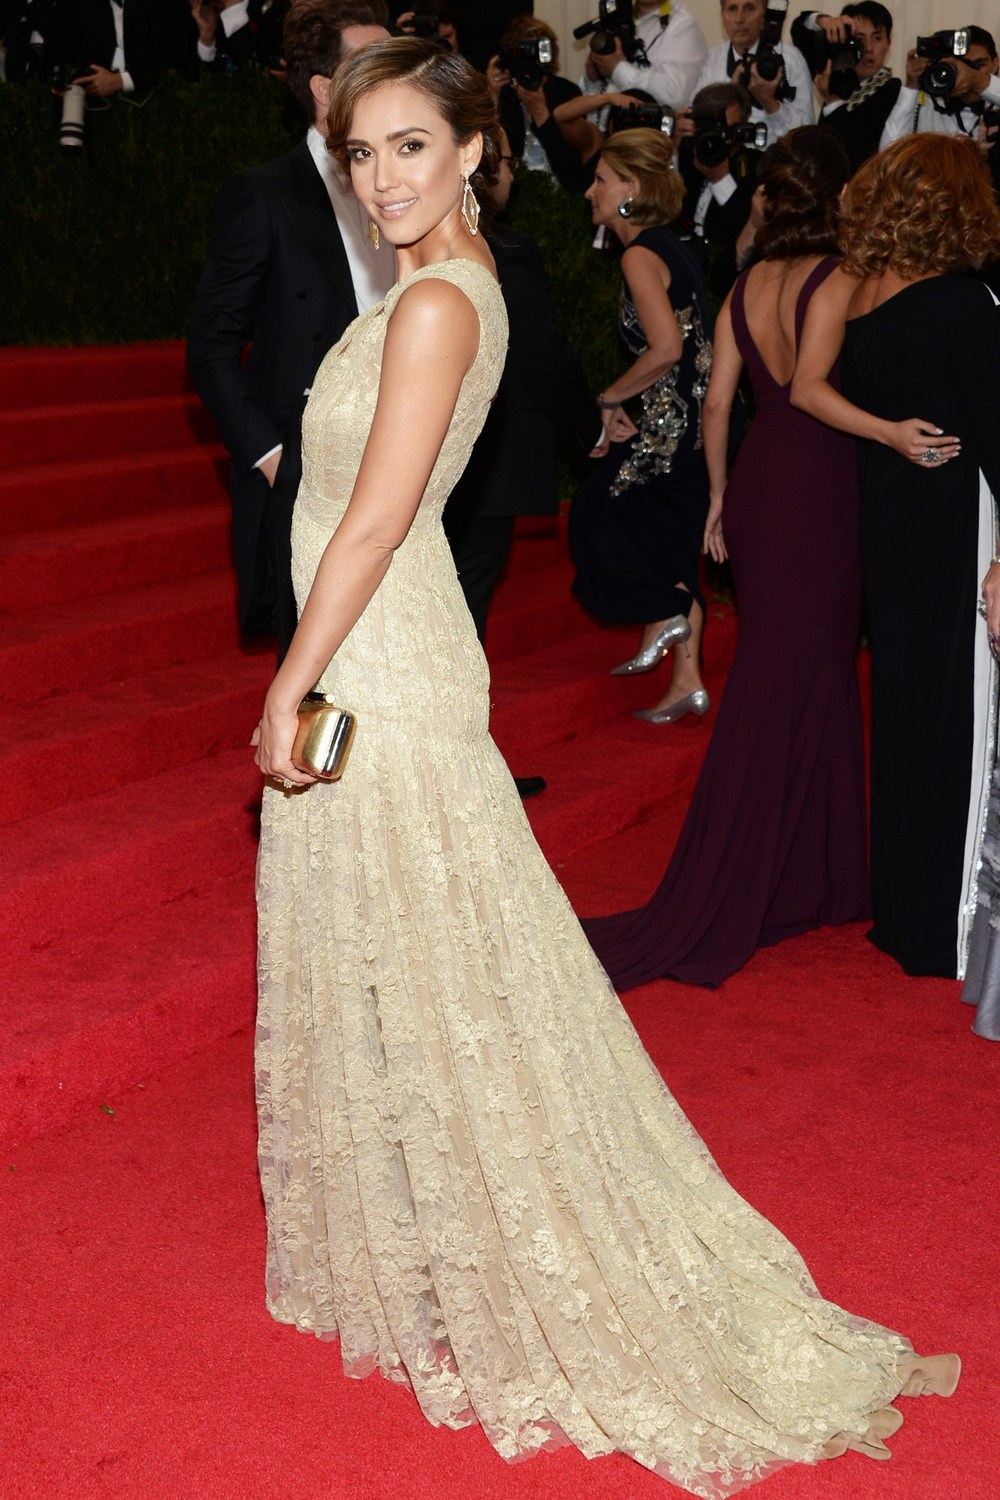 Jessica Alba wore a Diane von Furstenberg dress and clutch.